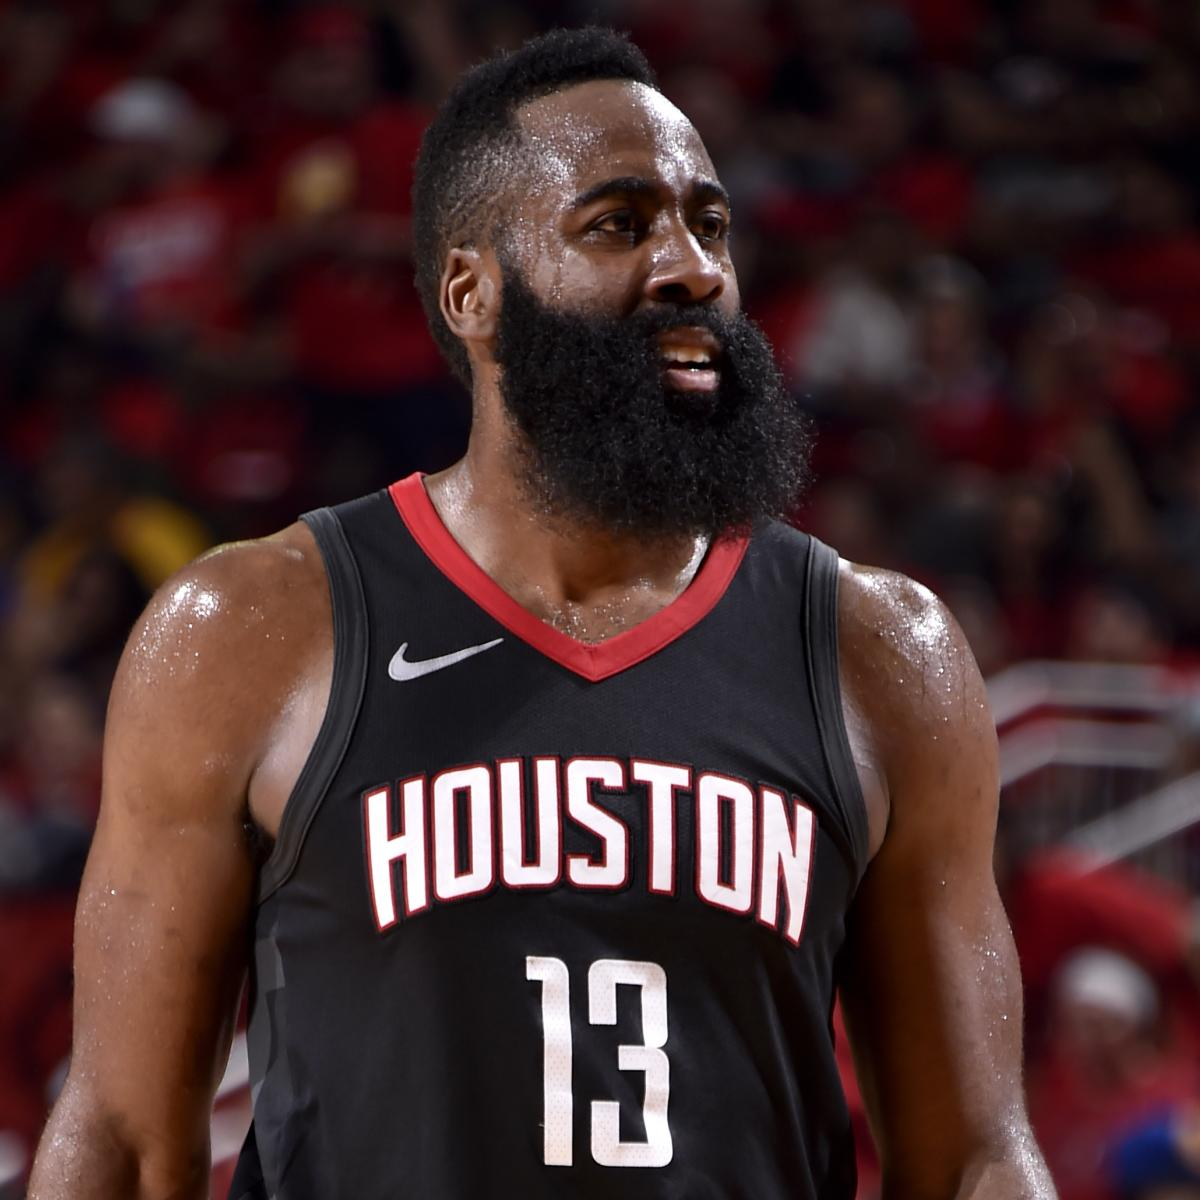 James Harden Wins 2018 NBA MVP Award over LeBron James ...